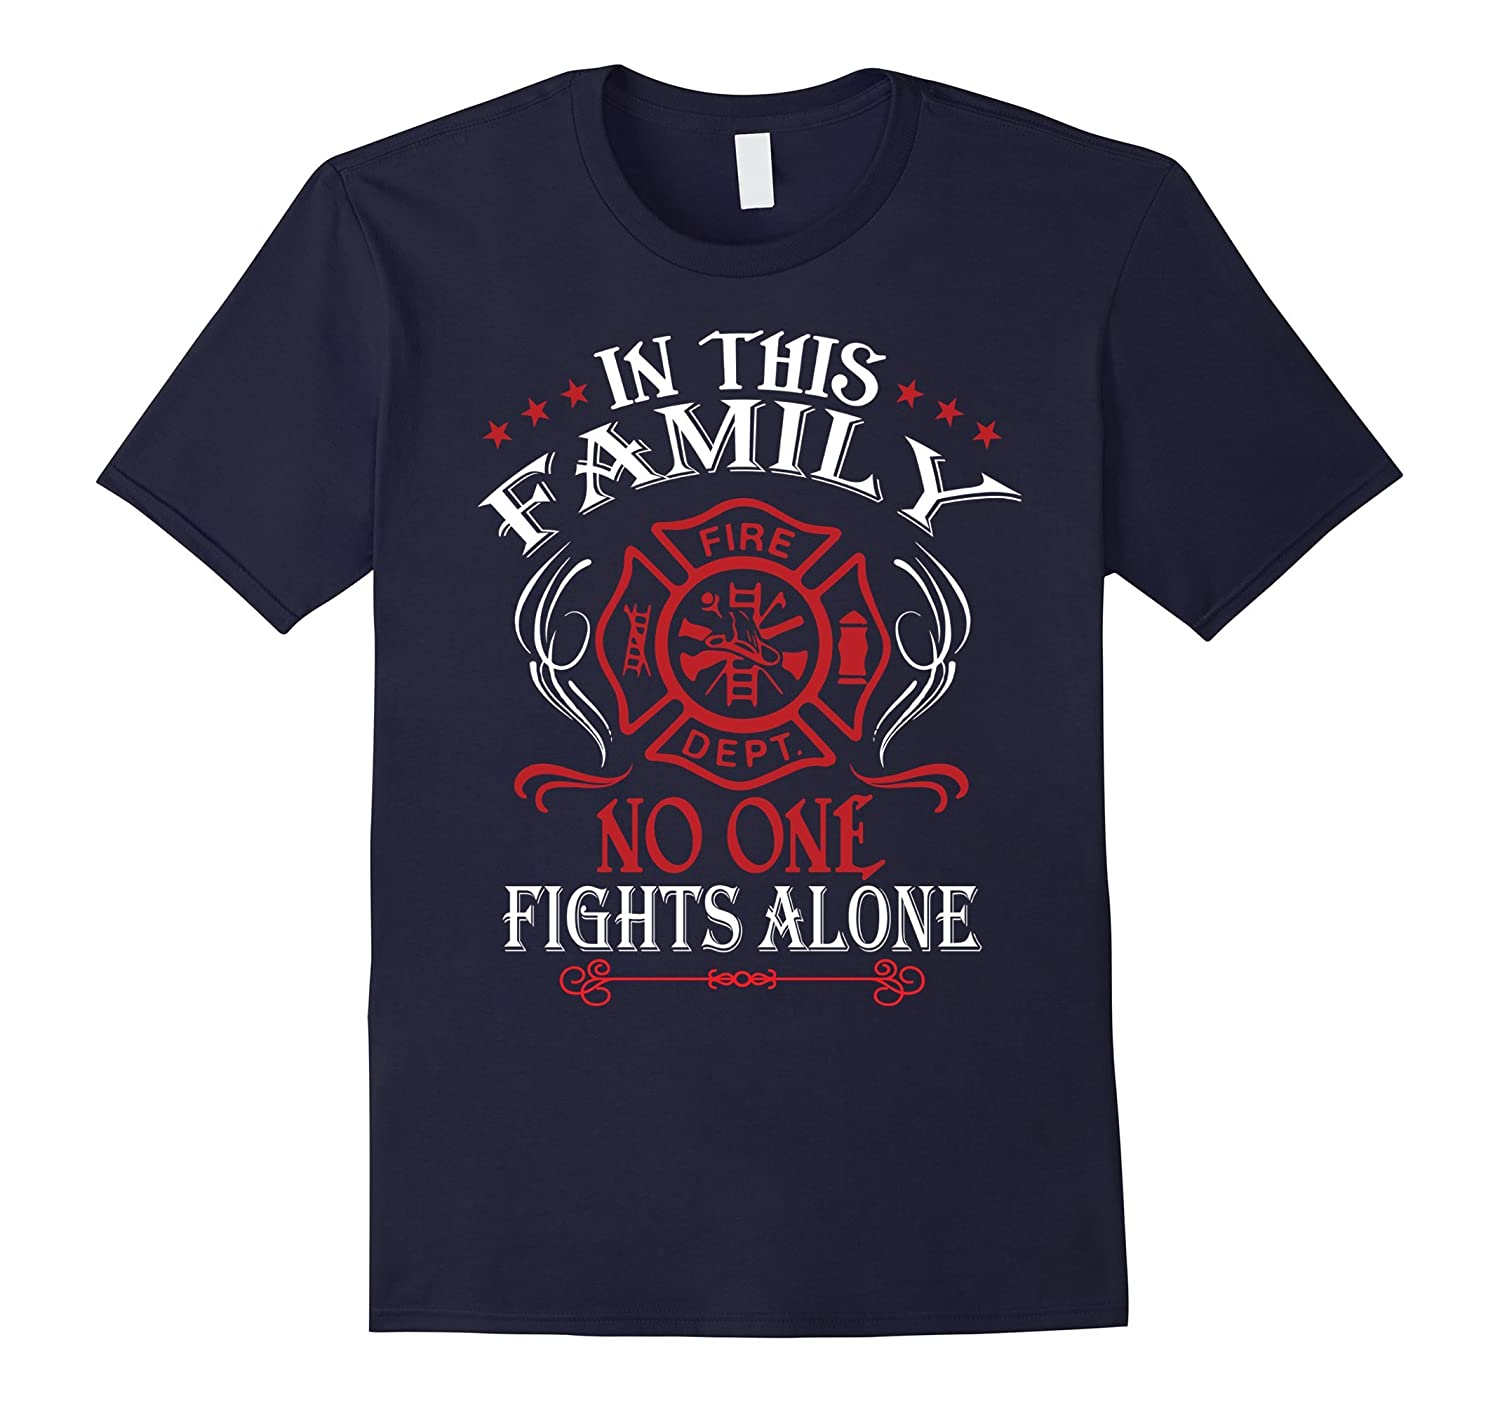 In This Family No One Fights Alone T Shirt Fire Dept Shirt-TD